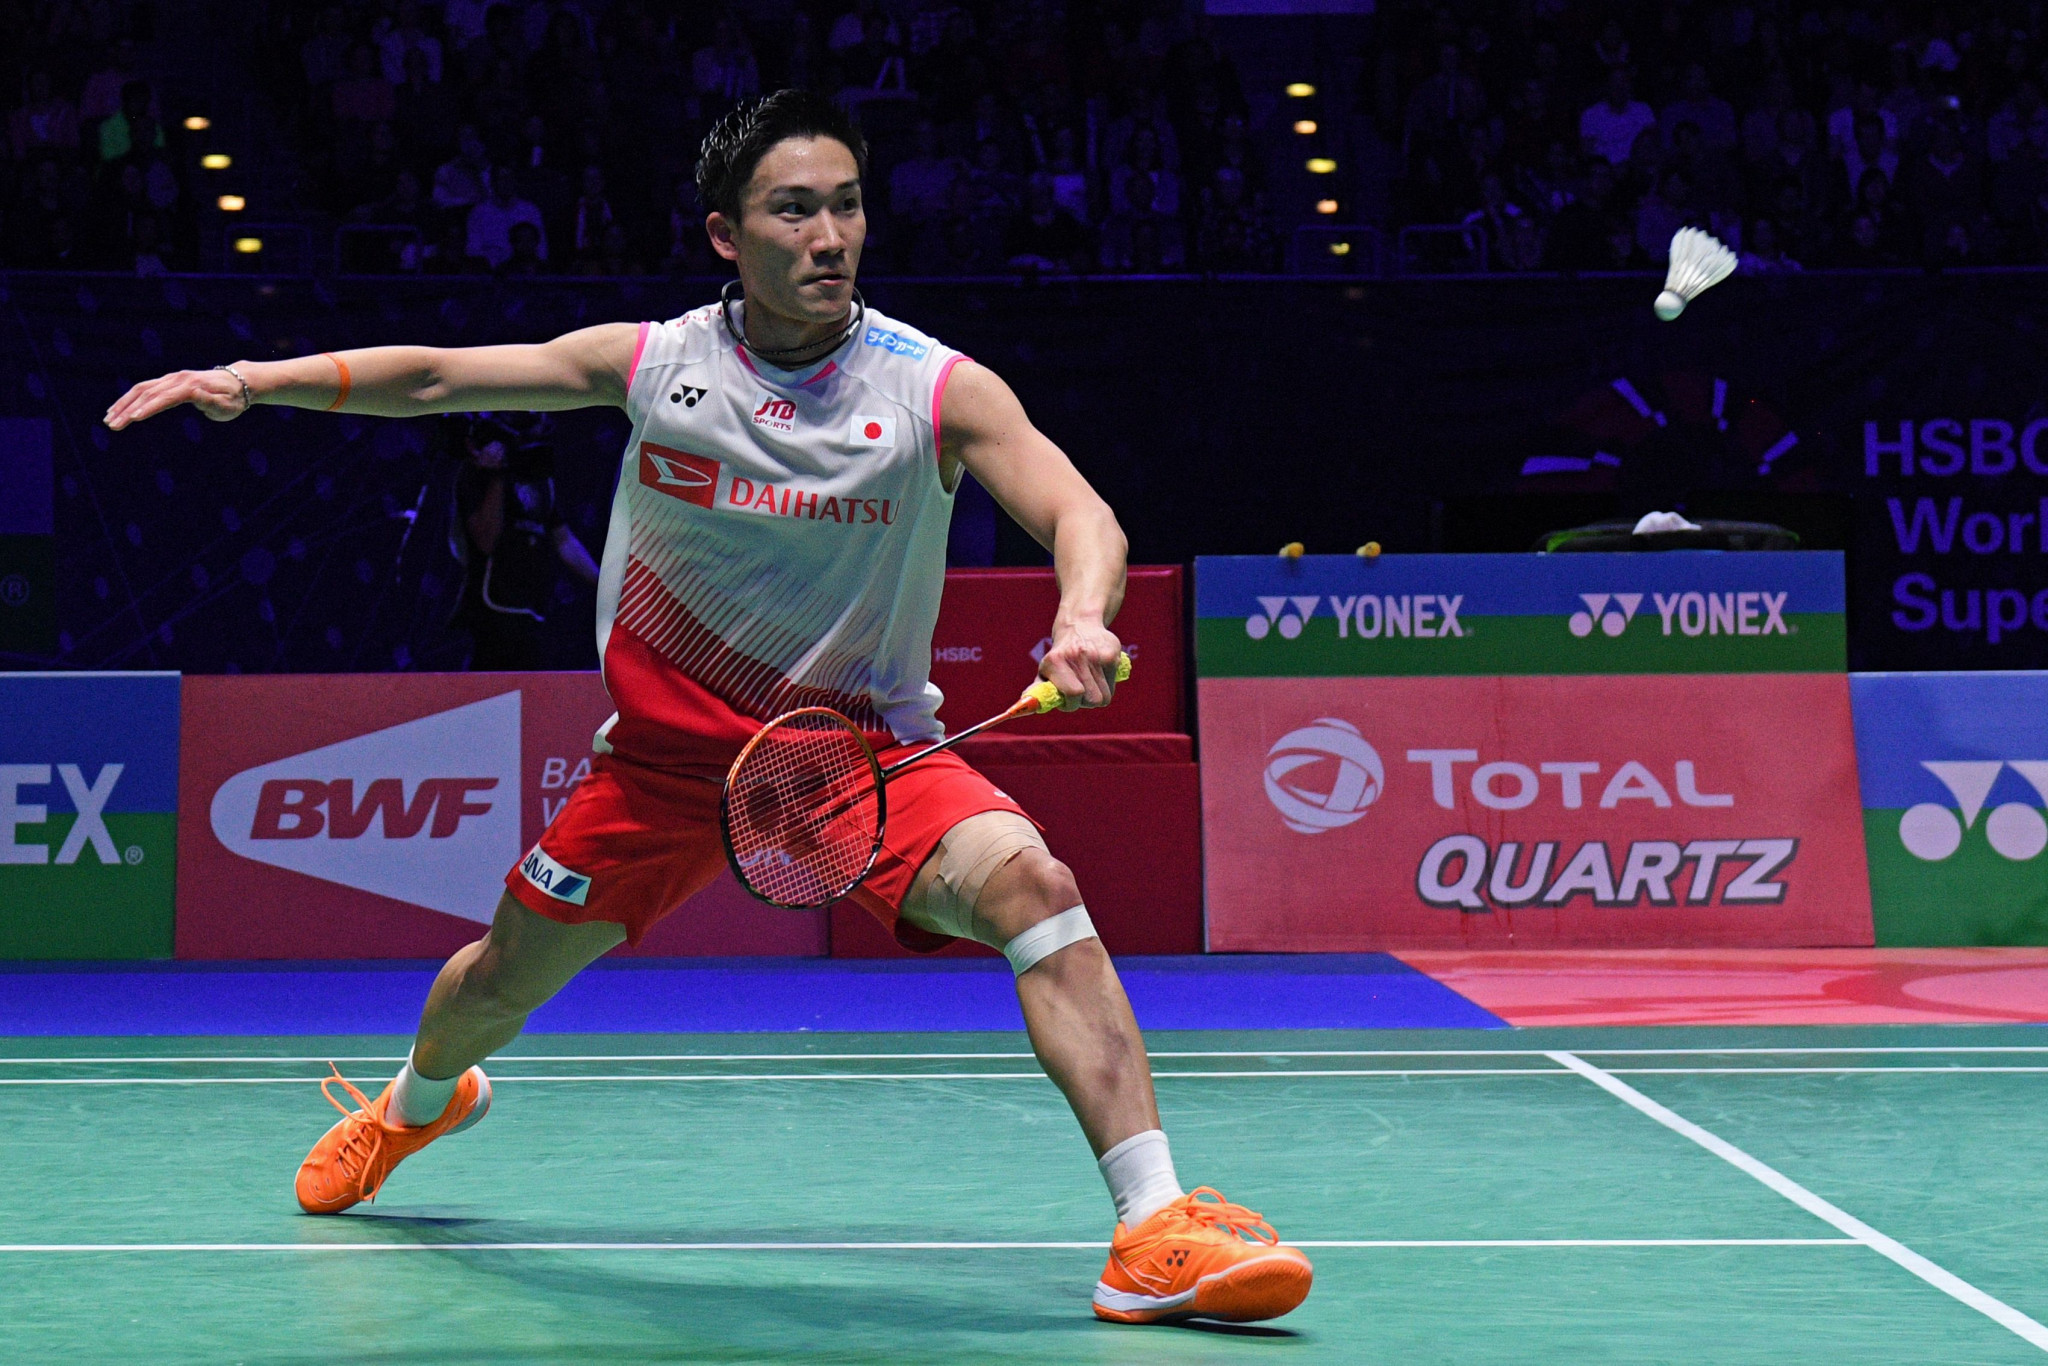 World number one Kento Momota of Japan is hoping to secure his first Badminton World Federation Malaysia Open title ©Getty Images